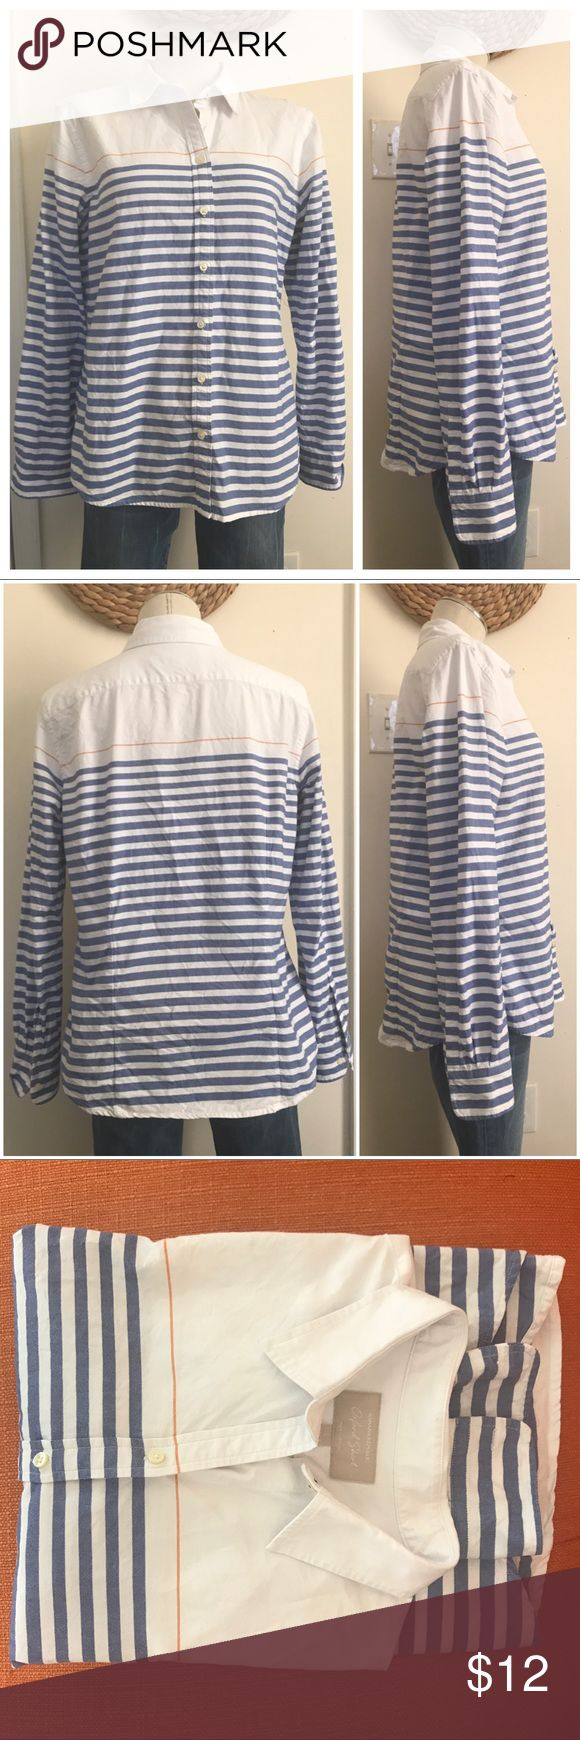 "BR oxford shirt EUC Shoulders 17"" Bust 20"" Length 25"" No Holes stains tears etc. has all buttons fabric is 100% cotton medium weight. Blue and white nautical stripe and Banana republic women's button up oxford shirt Banana Republic Tops Button Down Shirts"